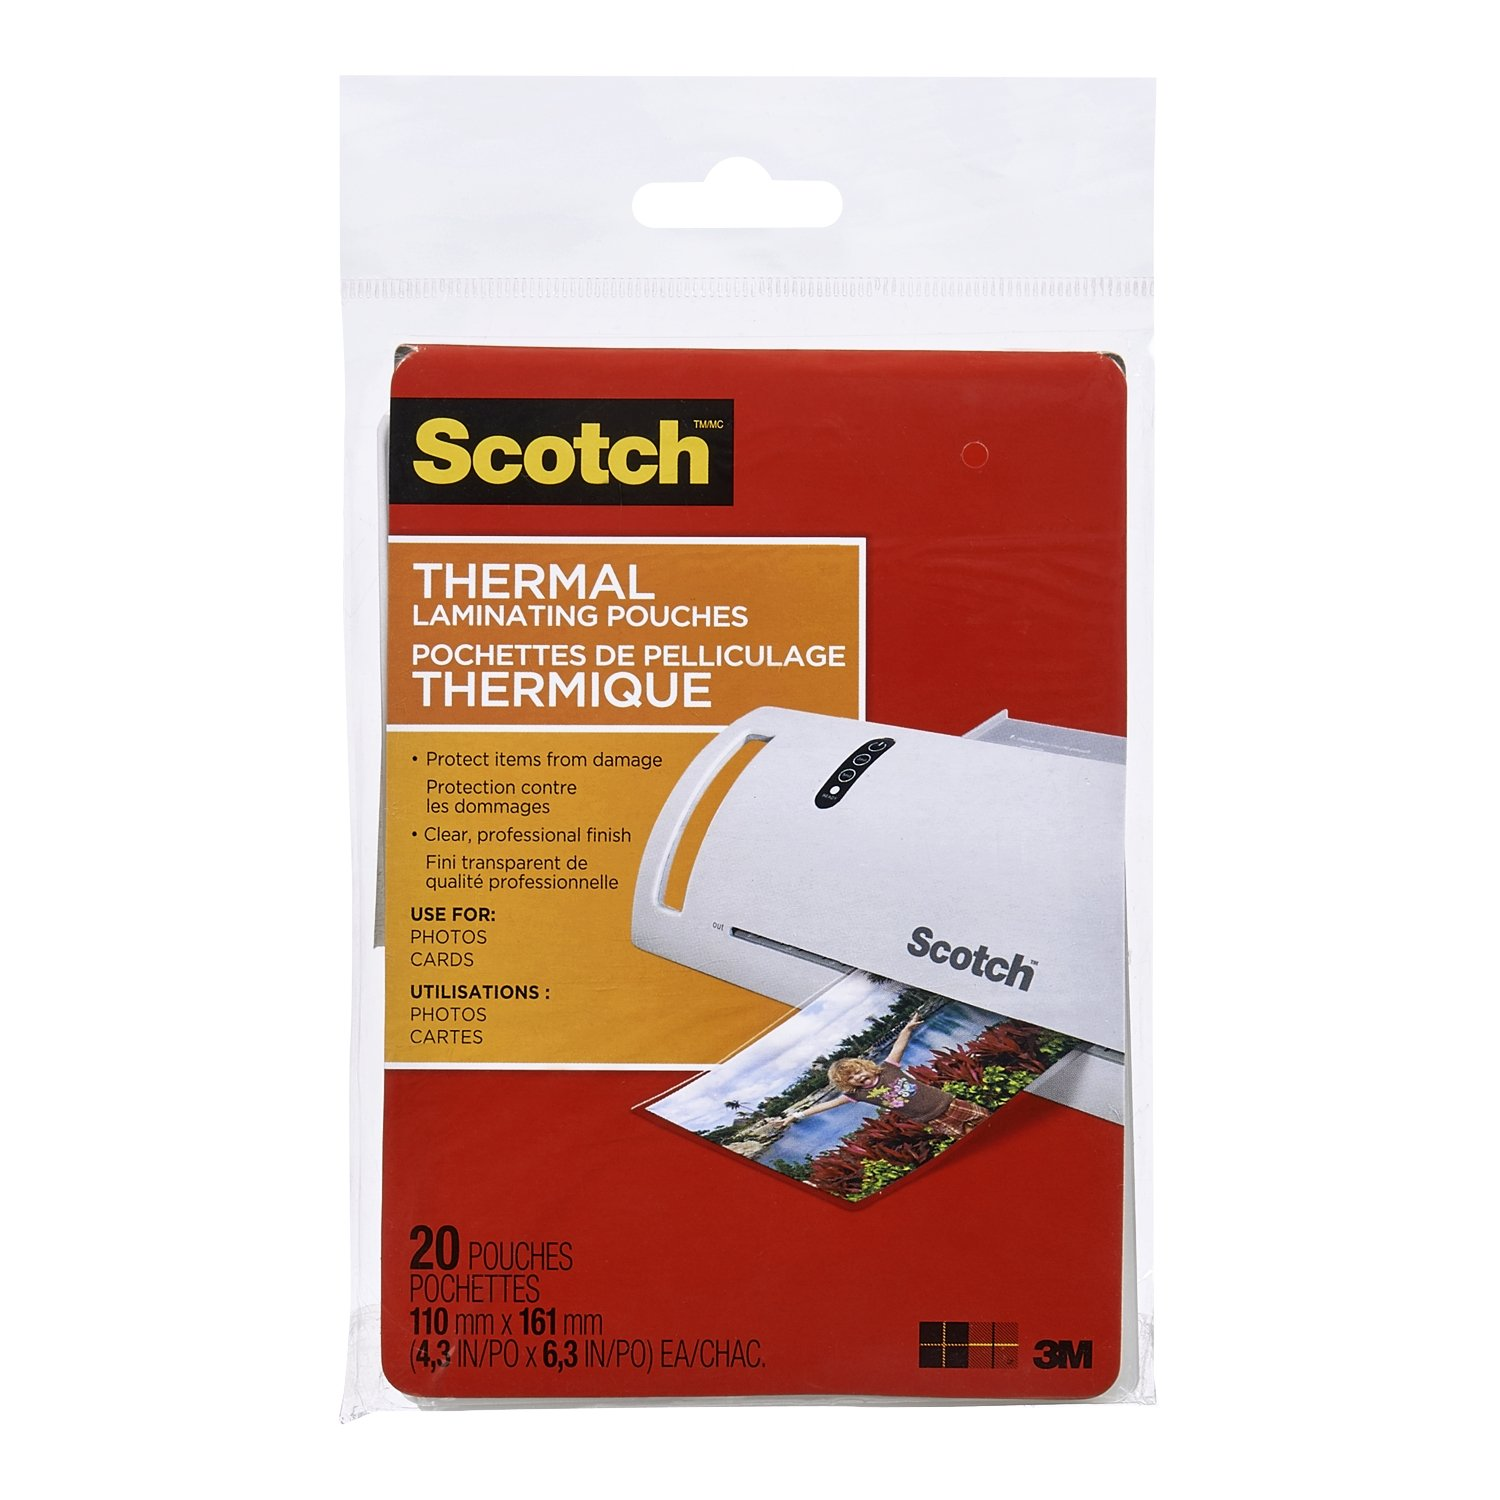 Scotch Thermal Laminating Pouches, 2.3-Inch x 3.7-Inch (Per Pouch), 5-Mil Thickness, 20 Pouches, (TP5851-20-C) 3M Canada Company